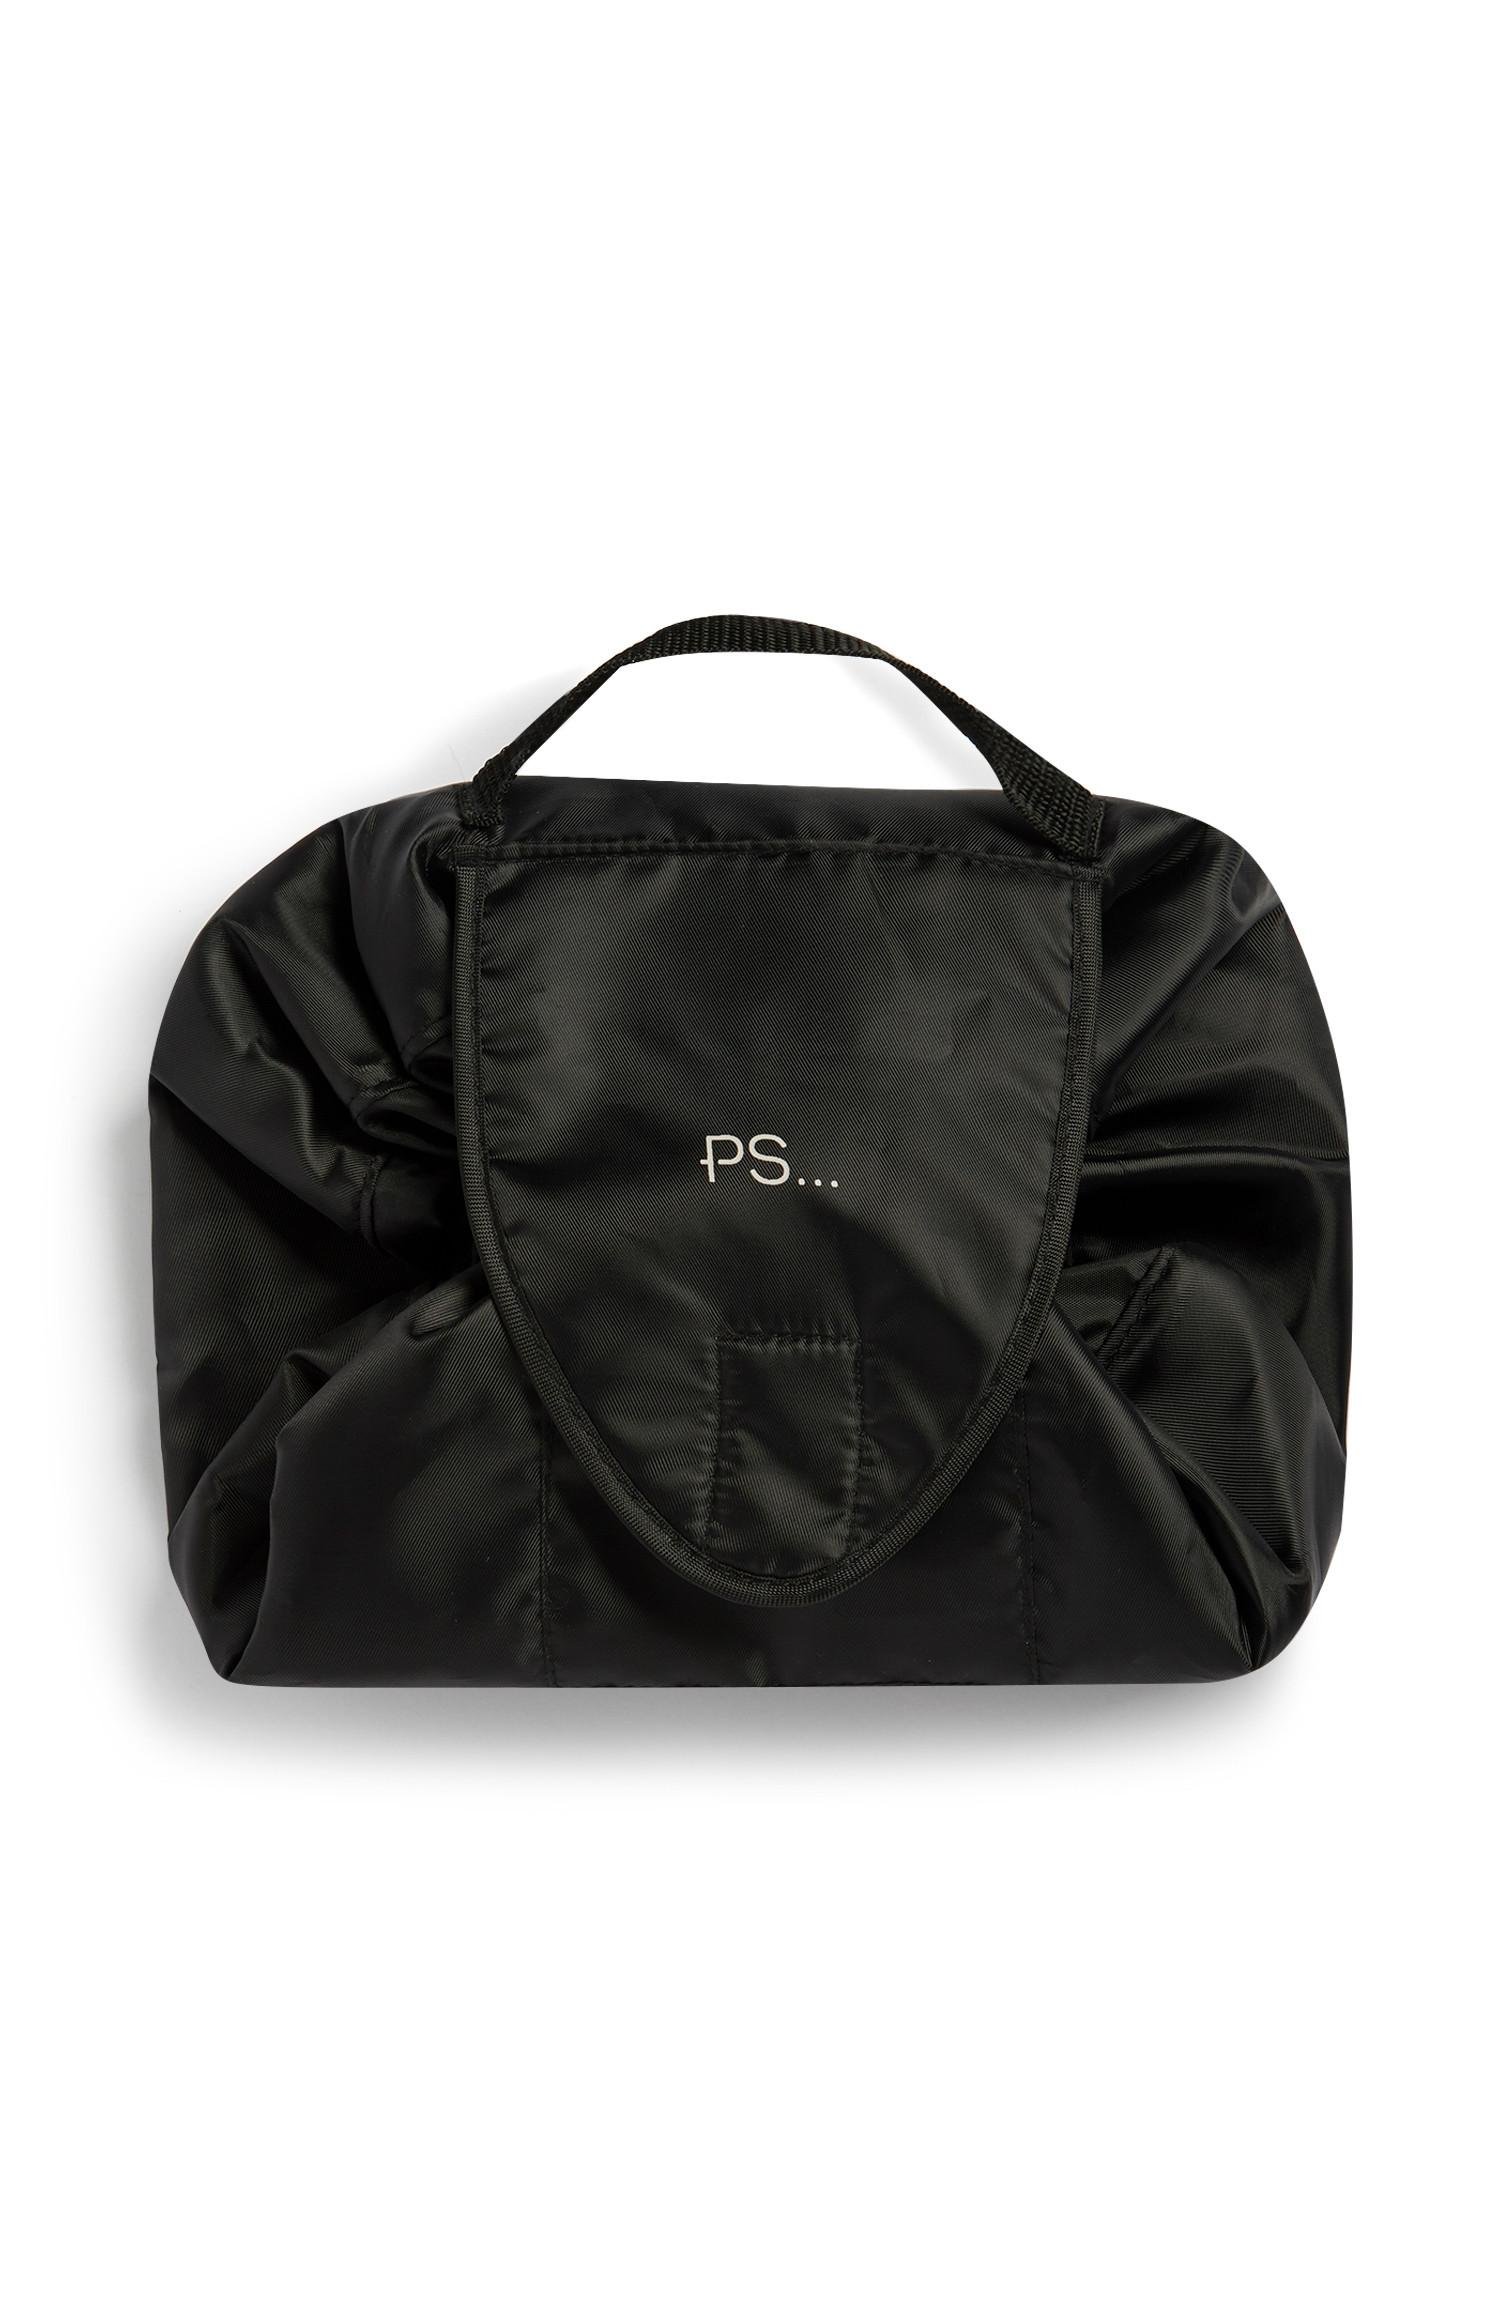 Black Beauty Bag